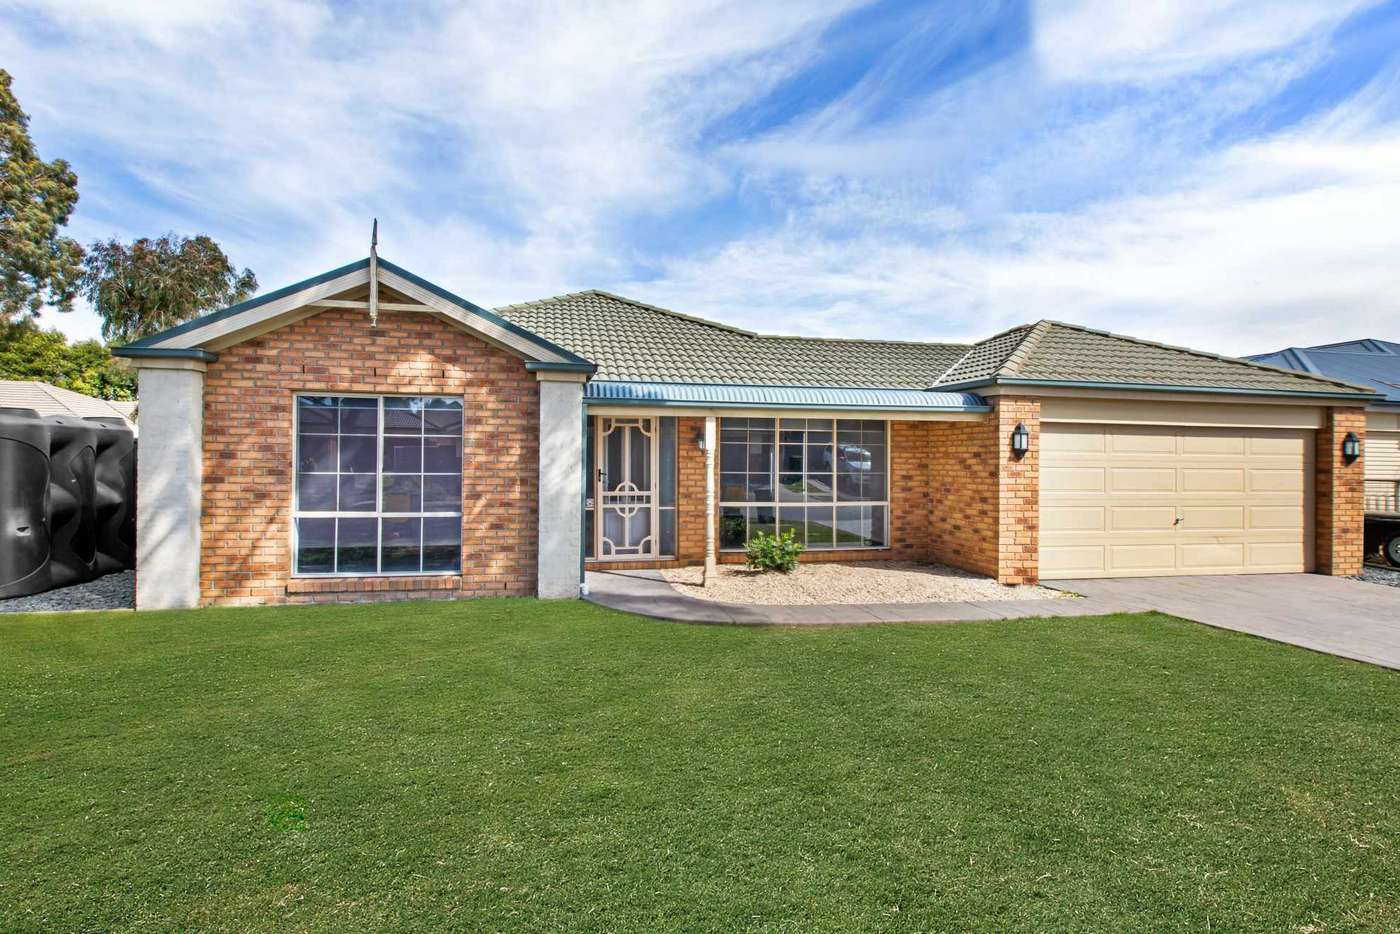 Main view of Homely house listing, 10 Candle Bark Court, Pakenham VIC 3810